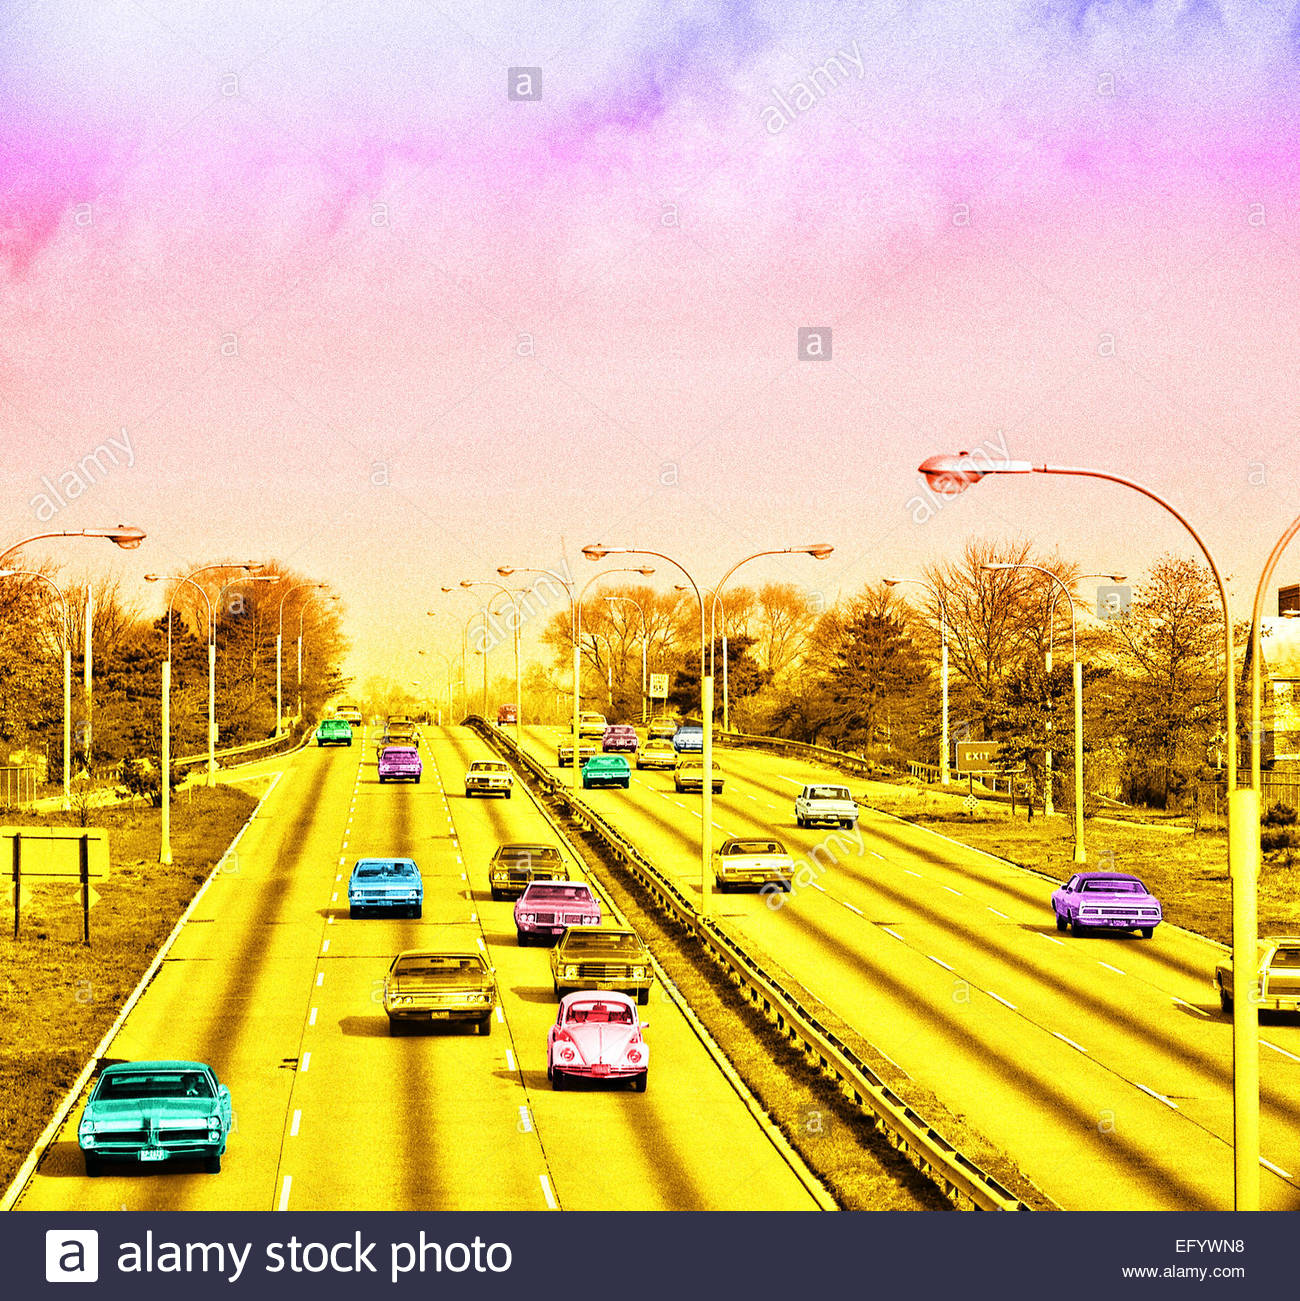 American vintage cars freeway retro grainy image - Stock Image